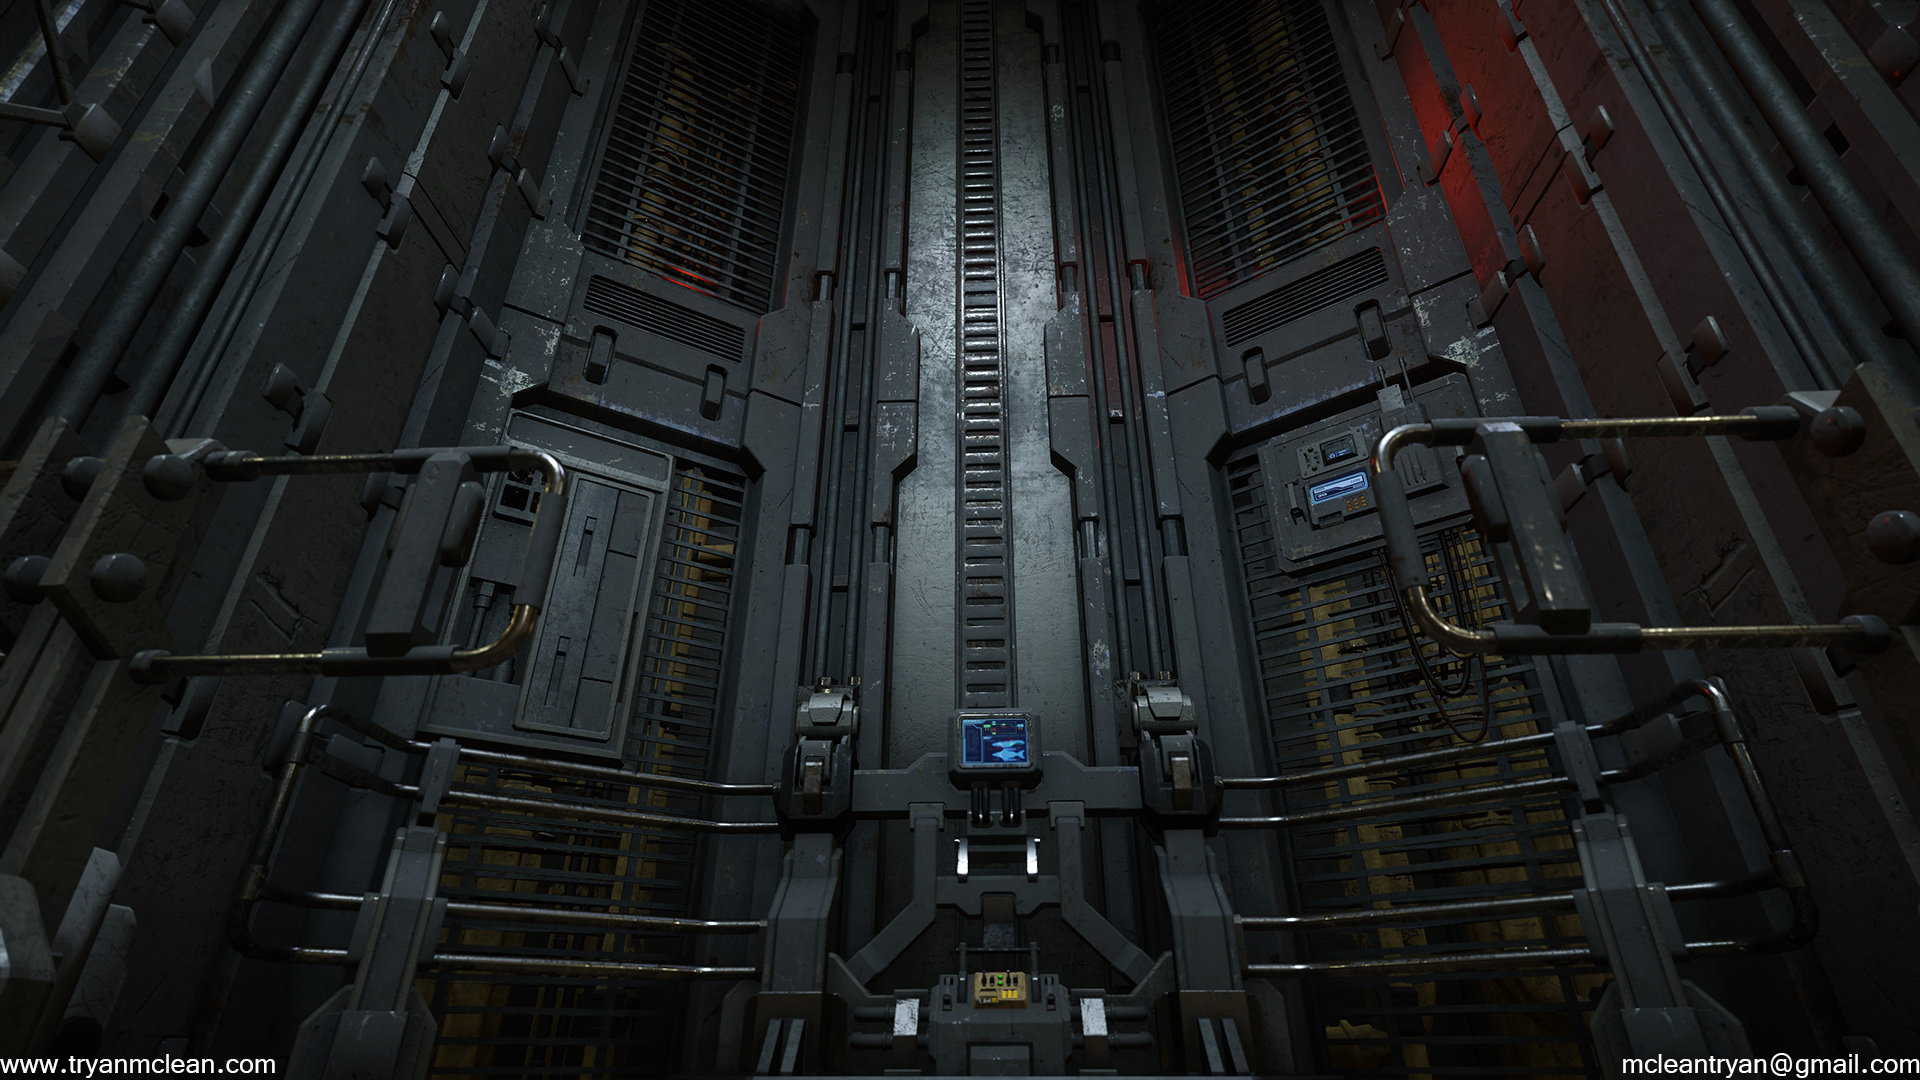 Star Citizen Hangar Control Area. Modelling done by myself. Texture blending done by myself. Textures, Materials created by others on team.